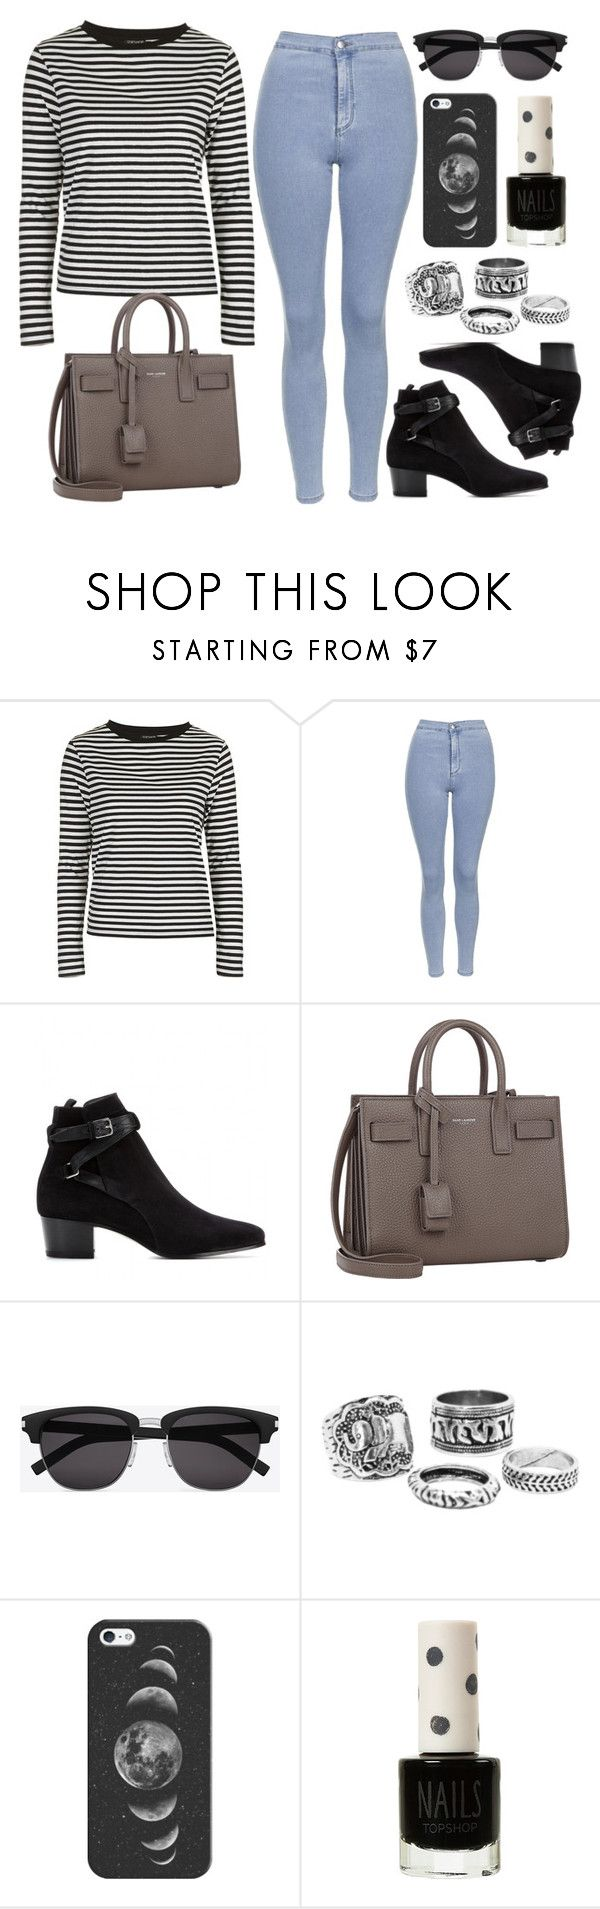 """Style #9389"" by vany-alvarado ❤ liked on Polyvore featuring Topshop, Yves Saint Laurent and Casetify"